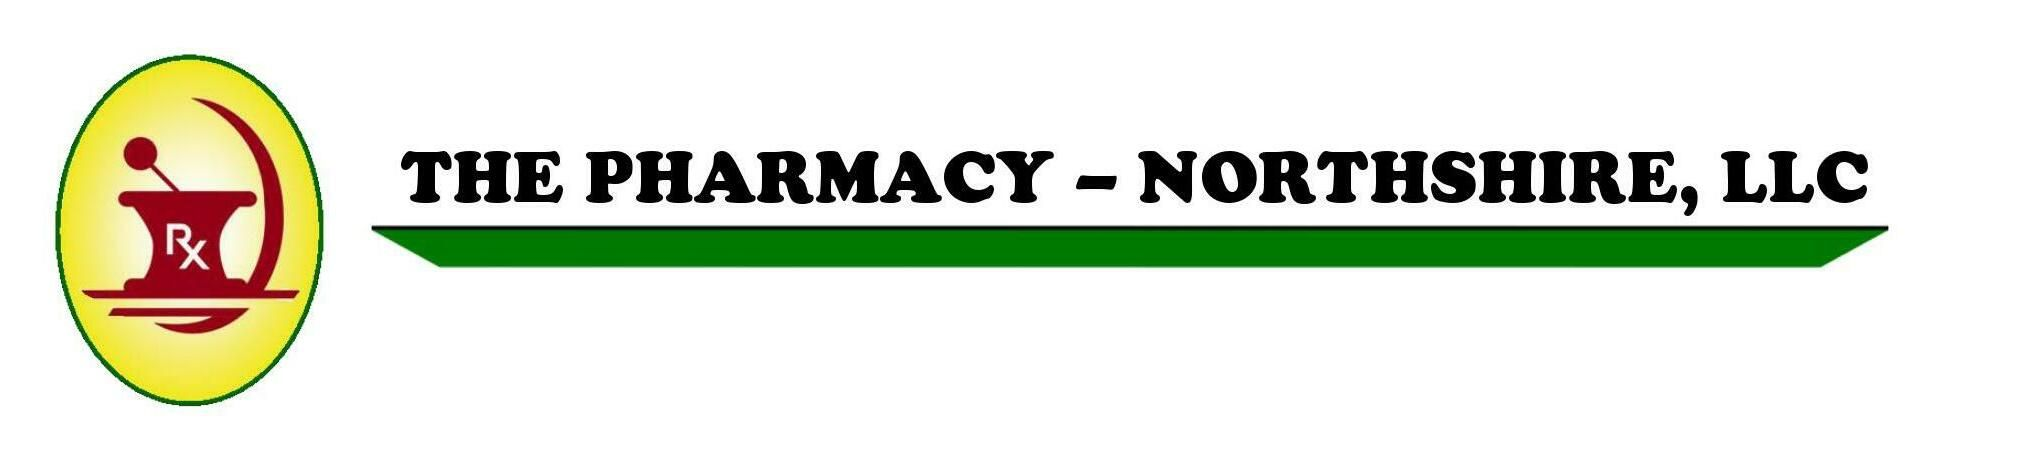 The Pharmacy-Northshire, LLC